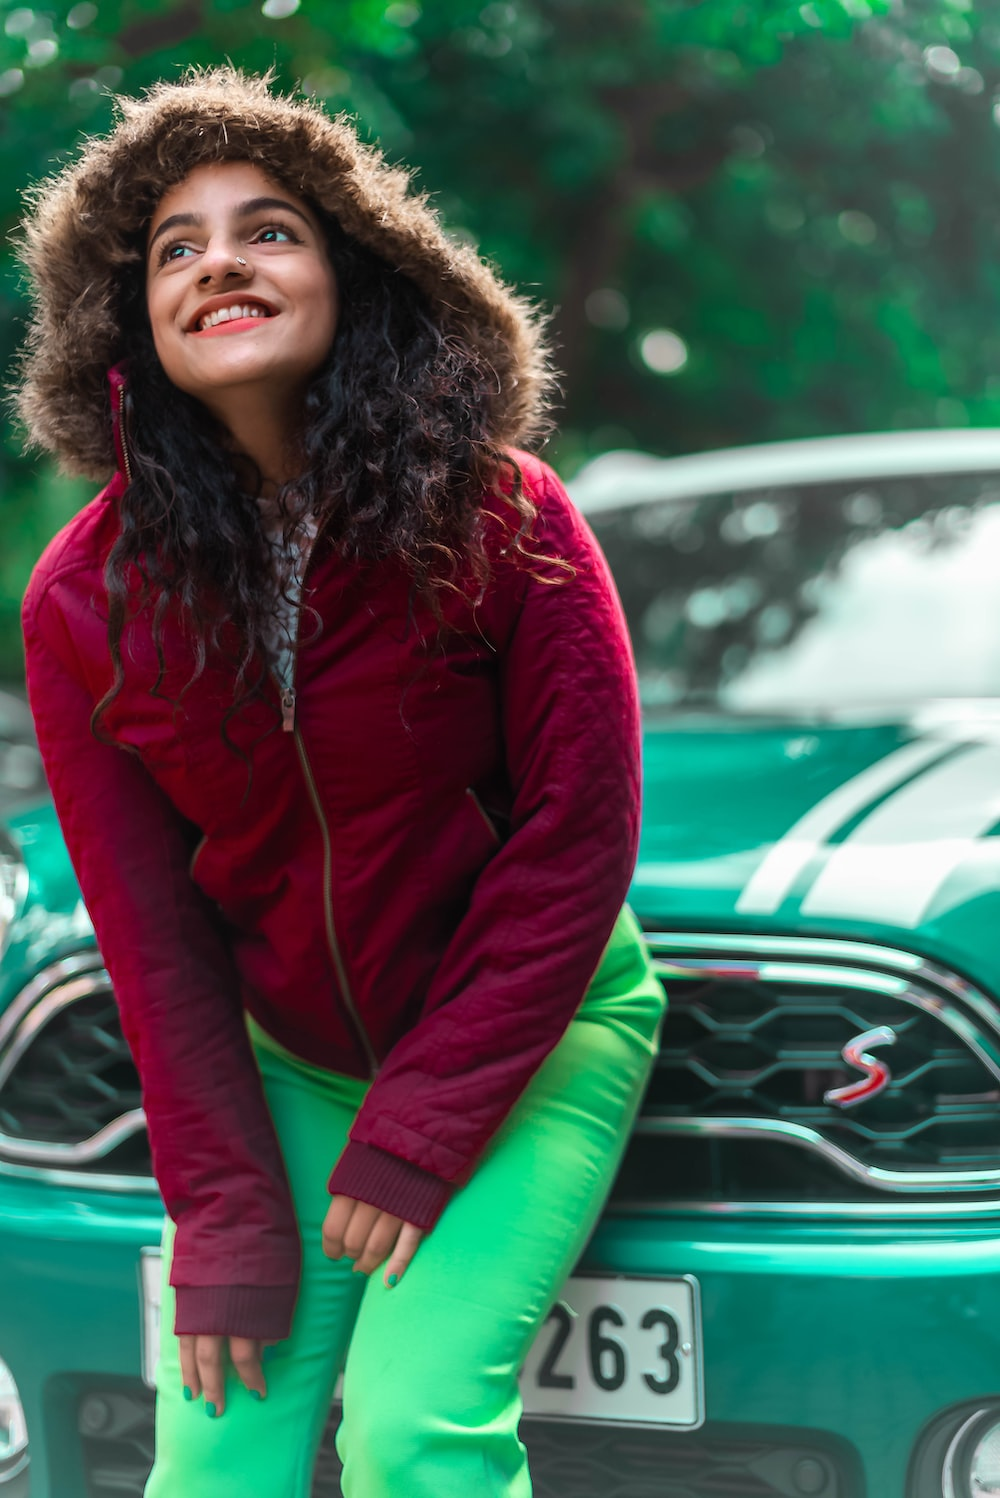 woman in red zip up jacket and green pants sitting on green car hood during daytime